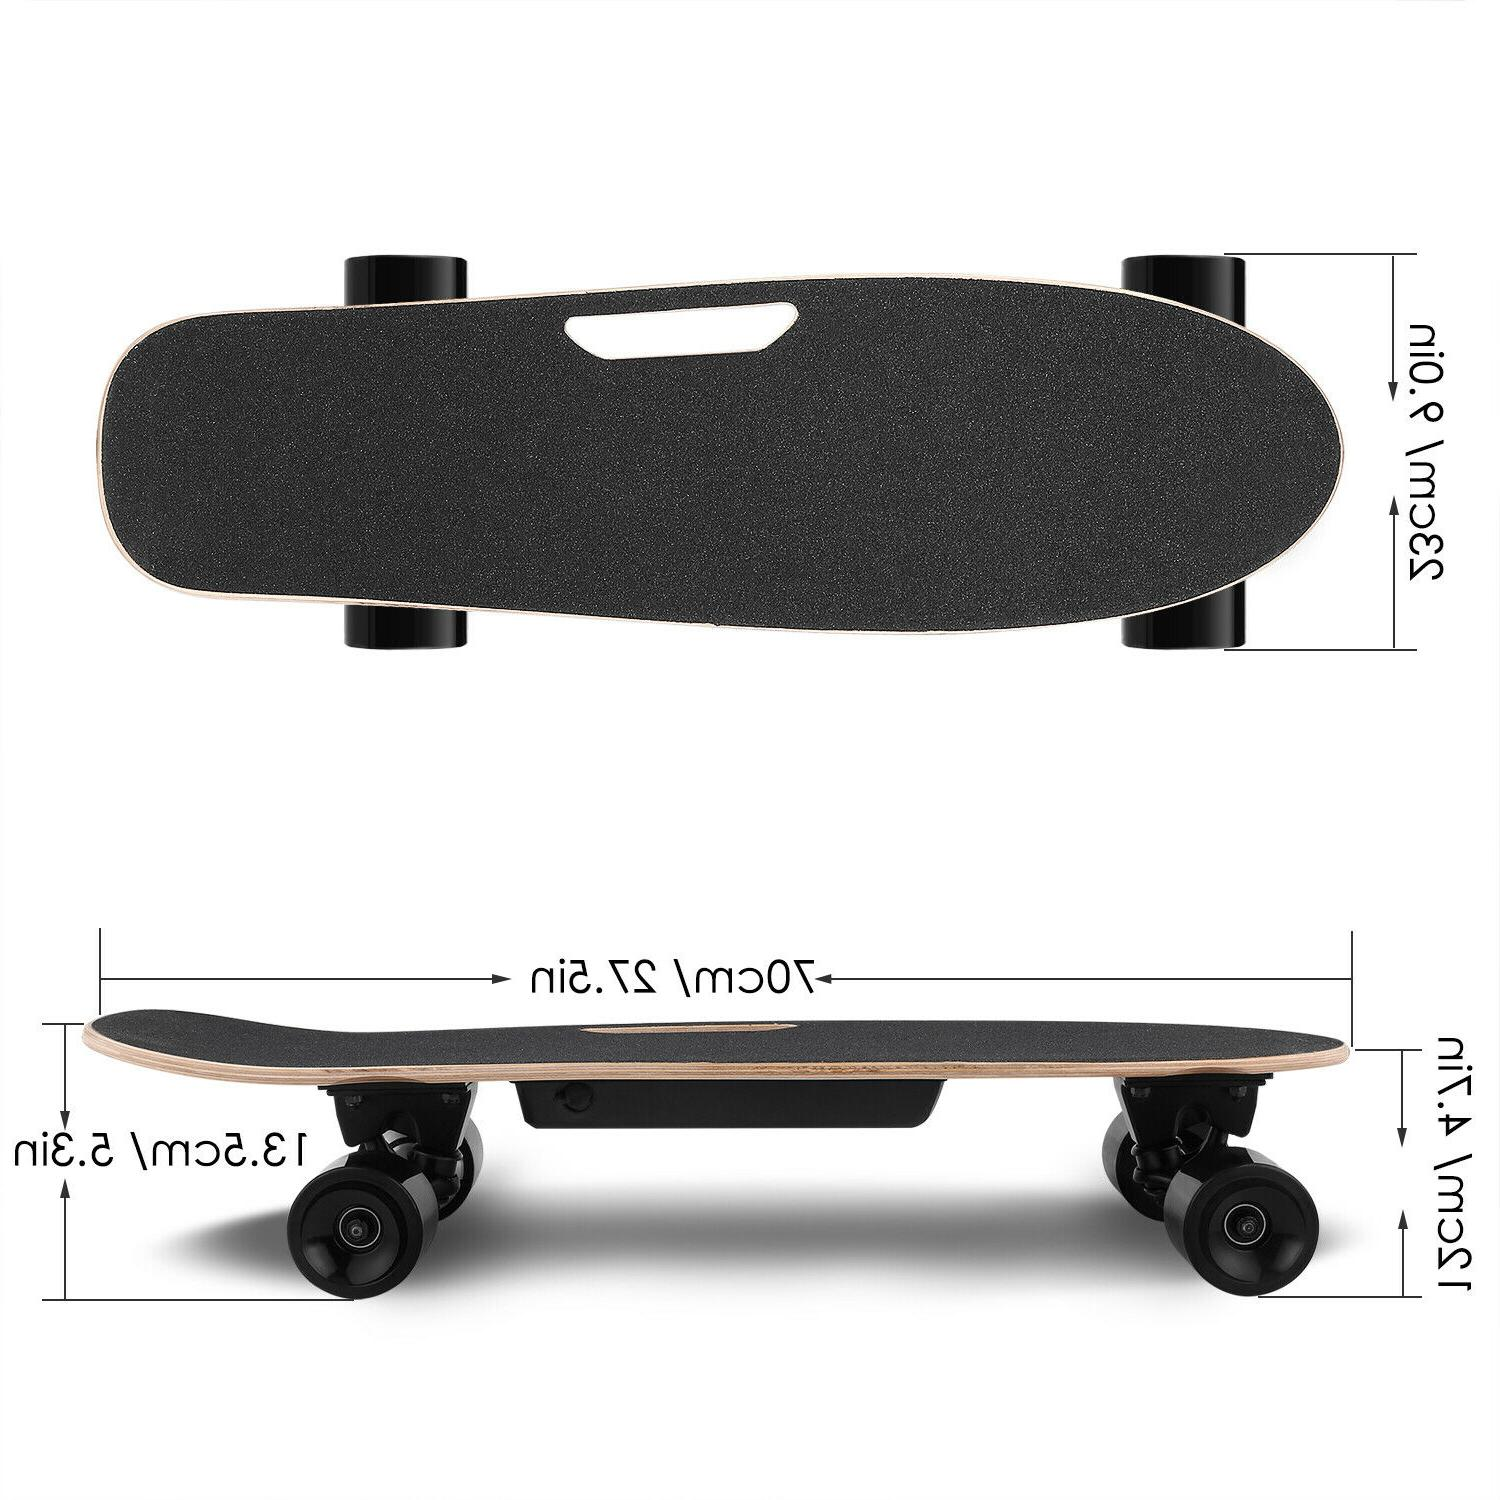 ANCHEER Skateboard Dual Motor Wireless Control